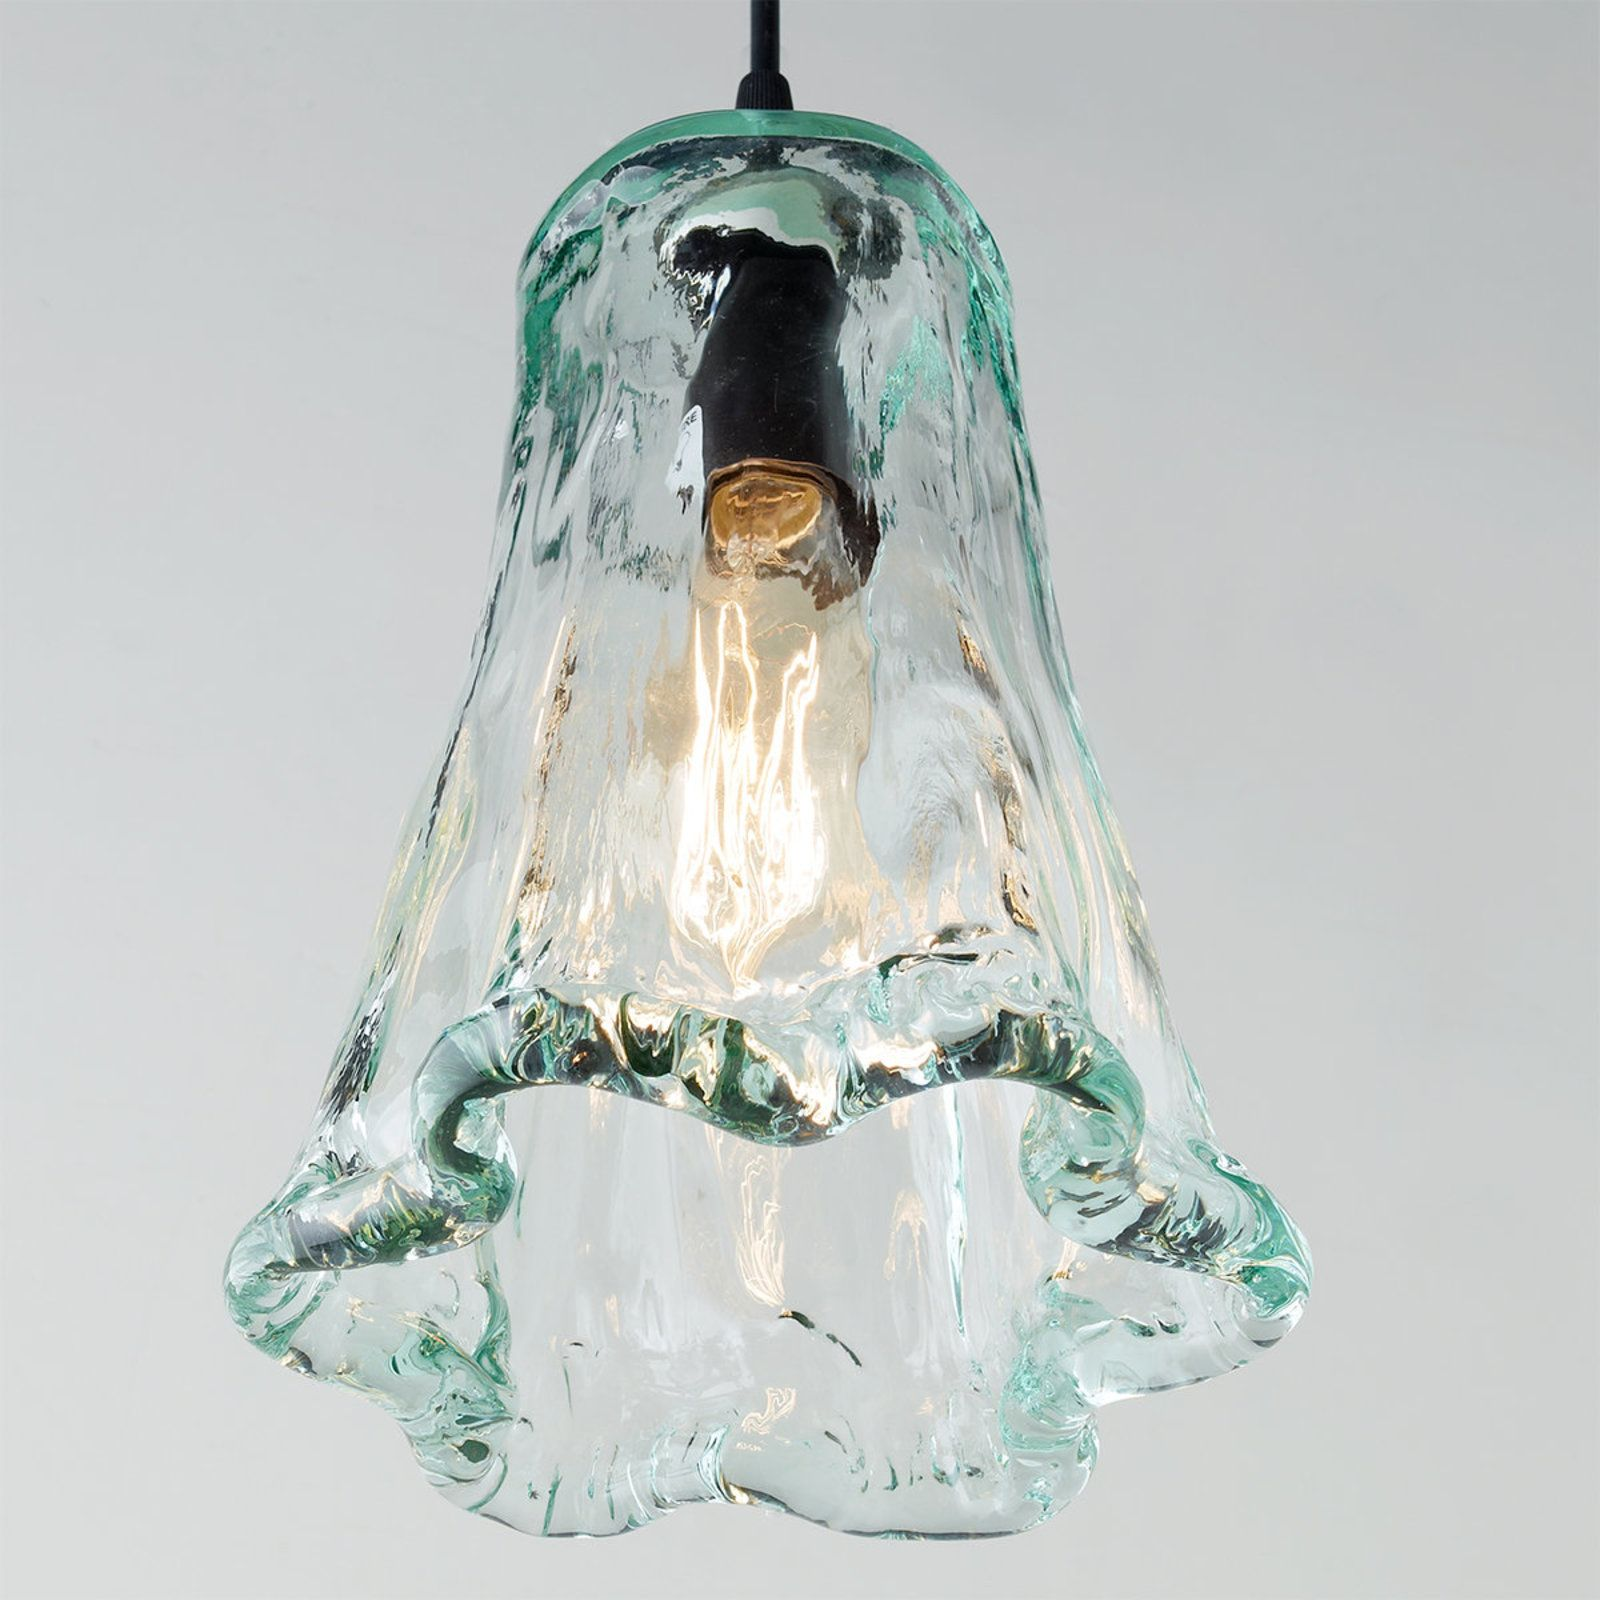 House Small Recycled Ruffle Gl Pendant Shades Of Light